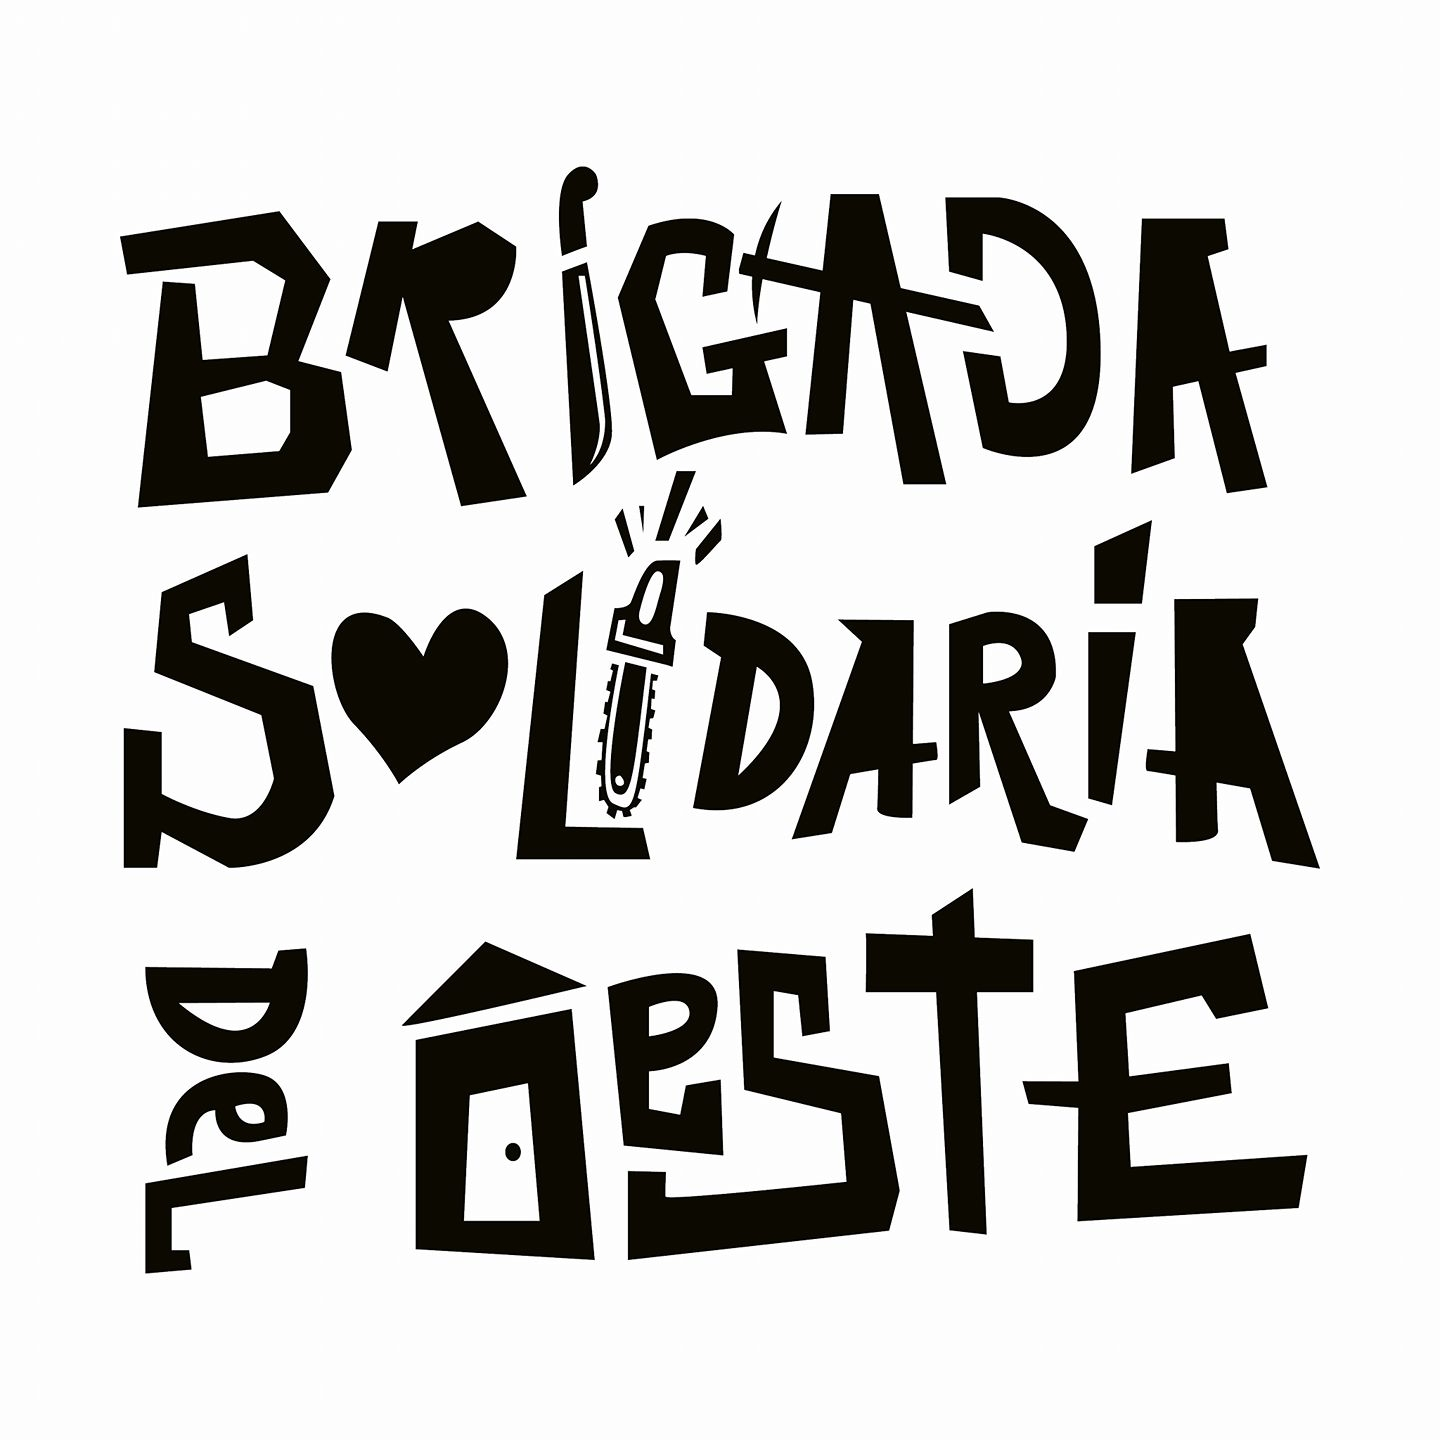 Solidarity with the Brigada Solidaria del Oeste